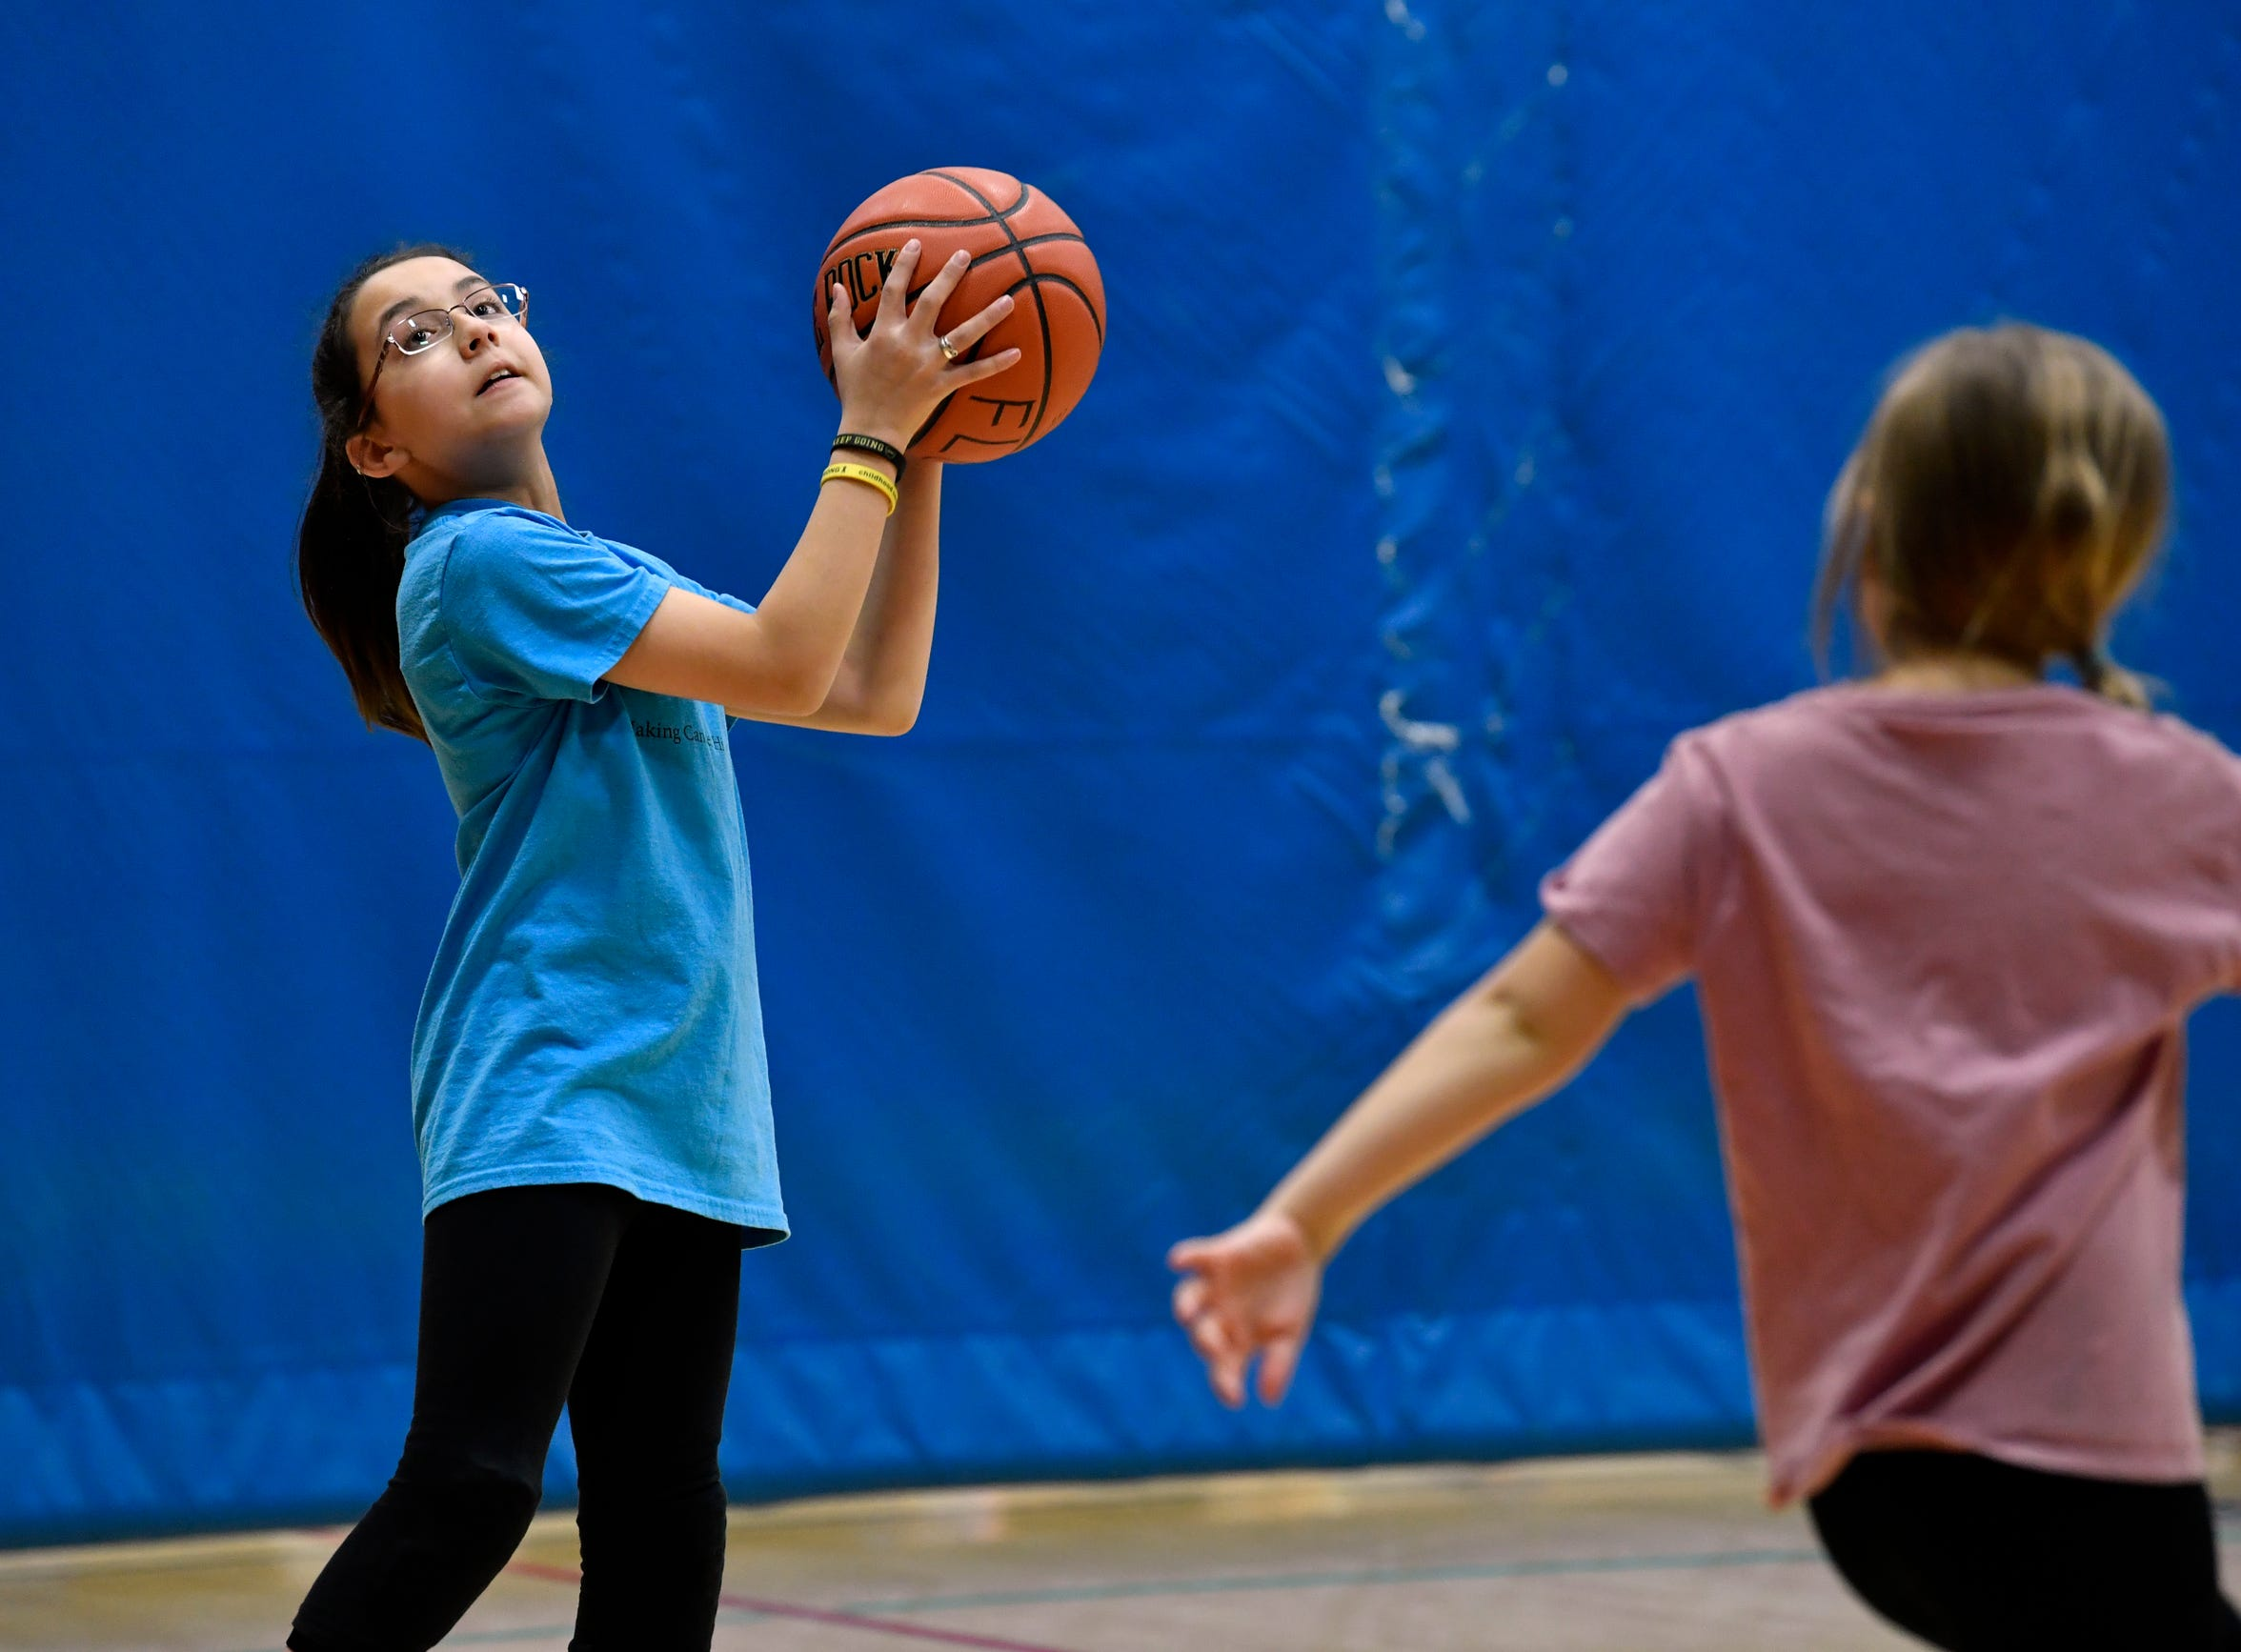 Ciara Husing, 10, plays basketball during a league practice at First Baptist Church Dec. 5. She was excited to be playing again after the fight for her life. Ciara was diagnosed with synovial sarcoma, a tissue cancer found in the body's extremities, in August 2018.